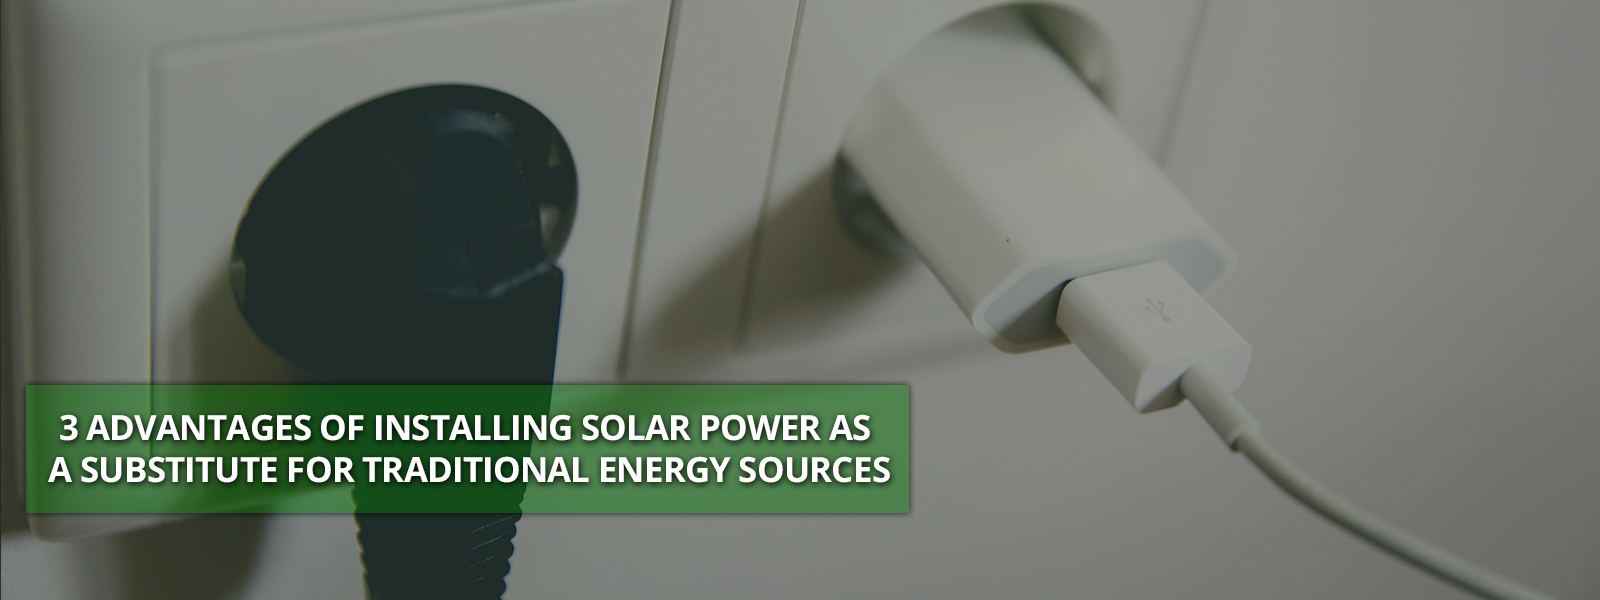 3 Advantages of Installing Solar Power as a Substitute for Traditional Energy Sources